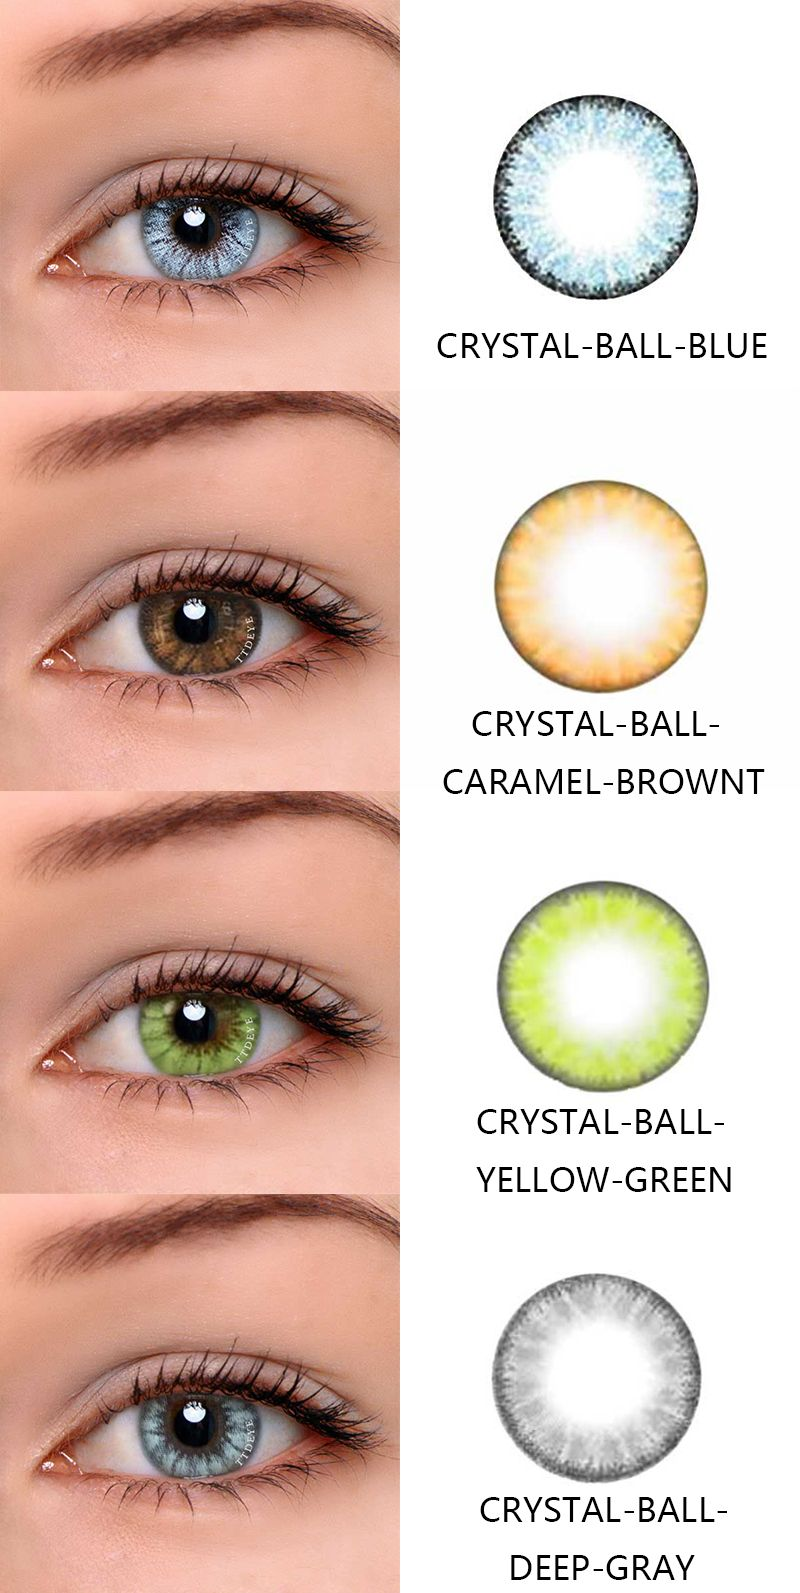 Ttdeye Com Crystal Ball Series The Human Doll Series Contact Lenses Colored Colored Eye Contacts Coloured Contact Lenses